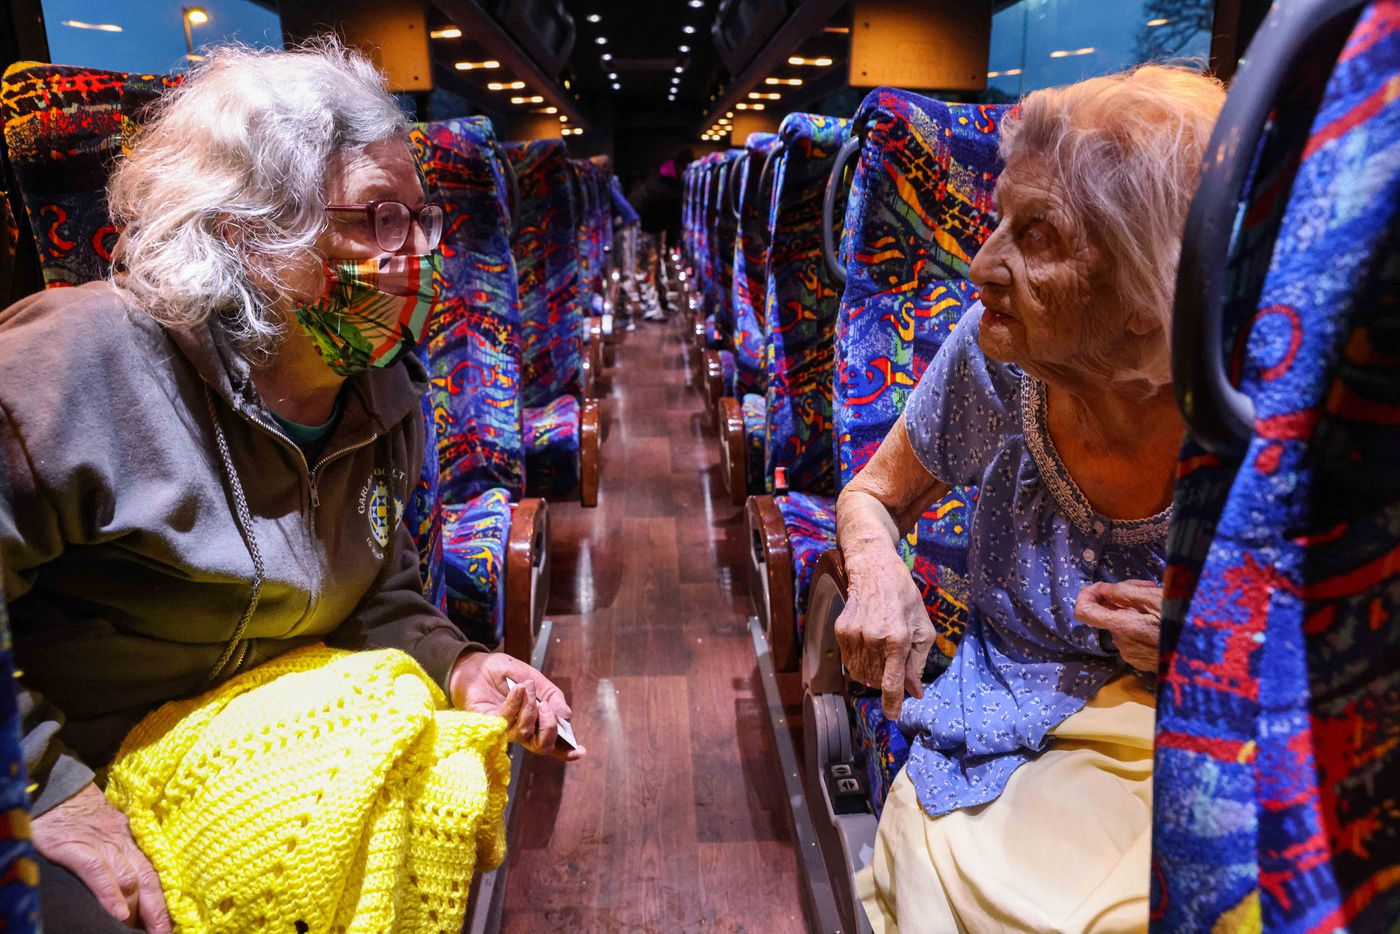 Gloria Sanders, 76, and her mother Maria Barajas, who is 100 years old and has dementia, look at each other as they sit at the bus that serves as a warming center at Pleasant Oaks Recreation Center to spend the night on Wednesday, February 18, 2021 in Dallas.